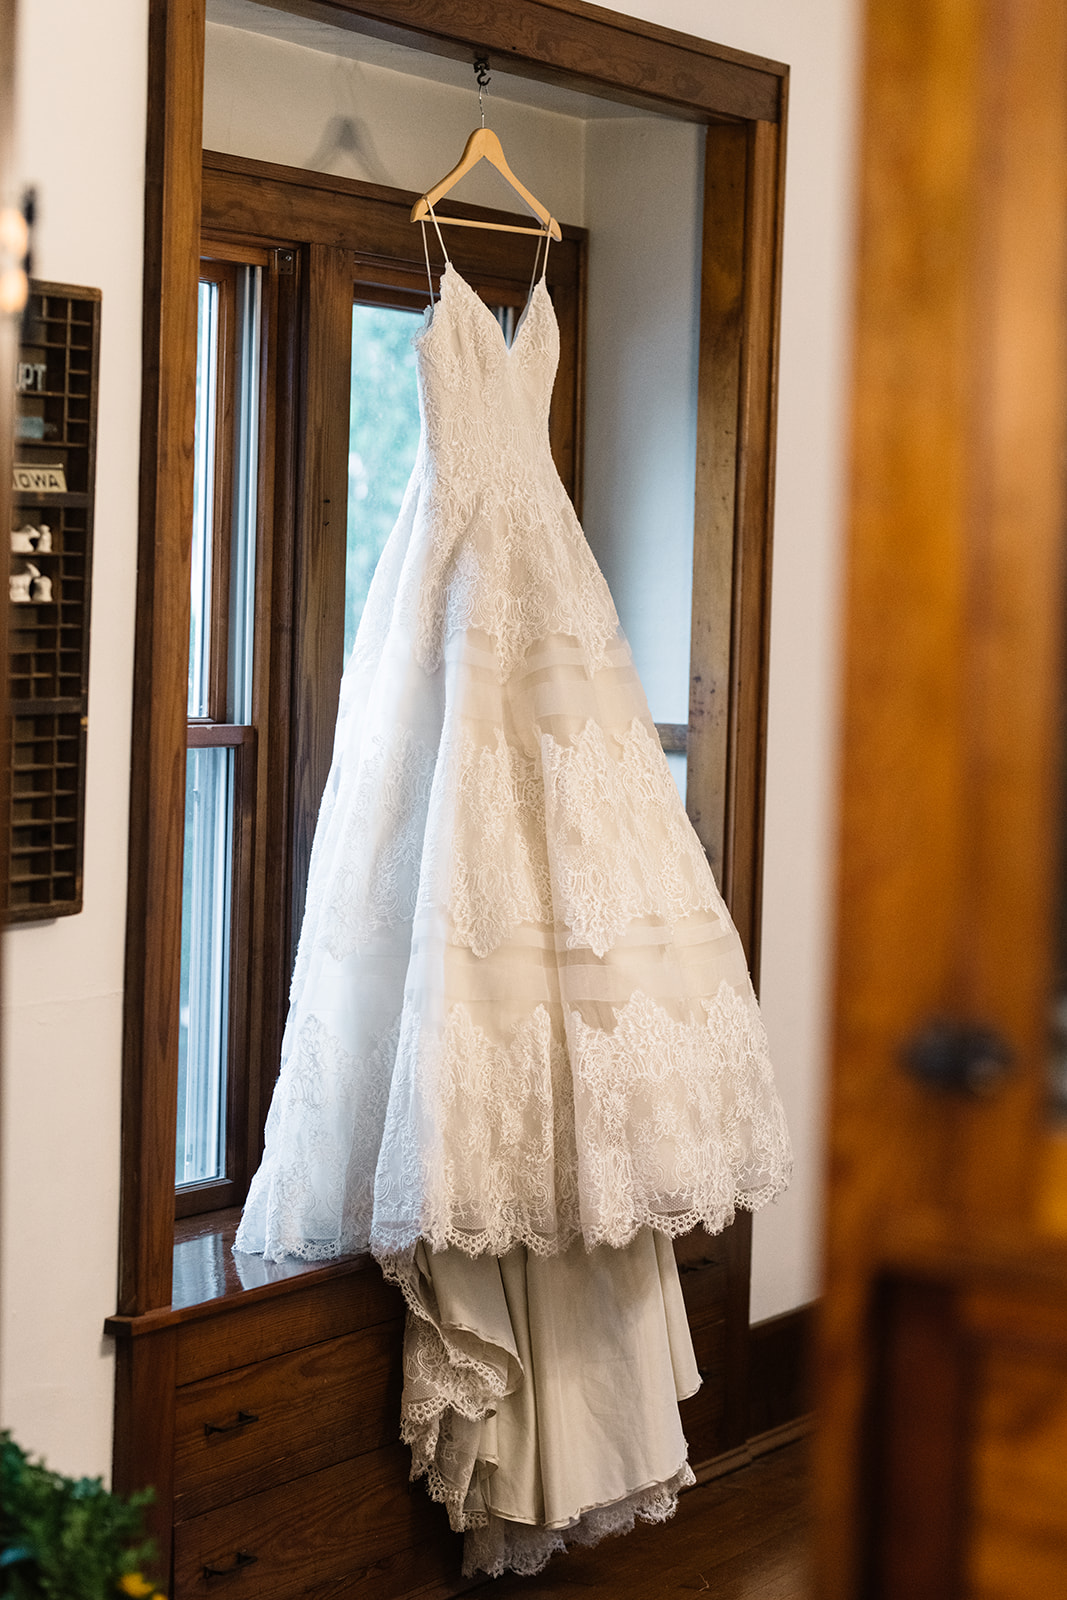 wedding dress hanging in window october iowa wedding